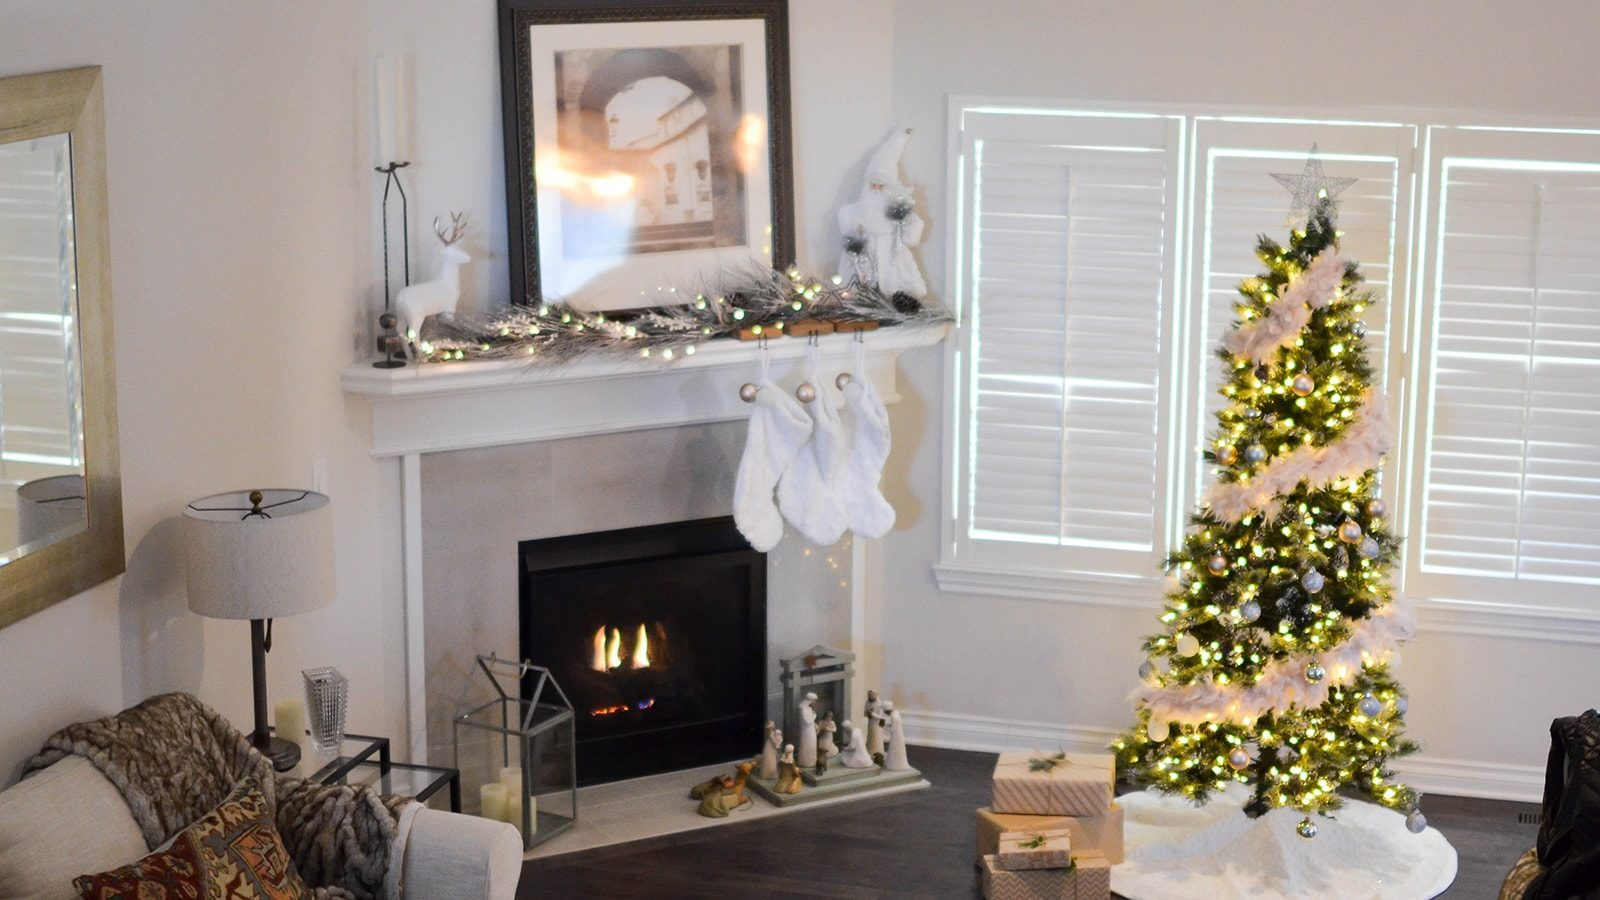 How to Make Your Home Festive this Christmas